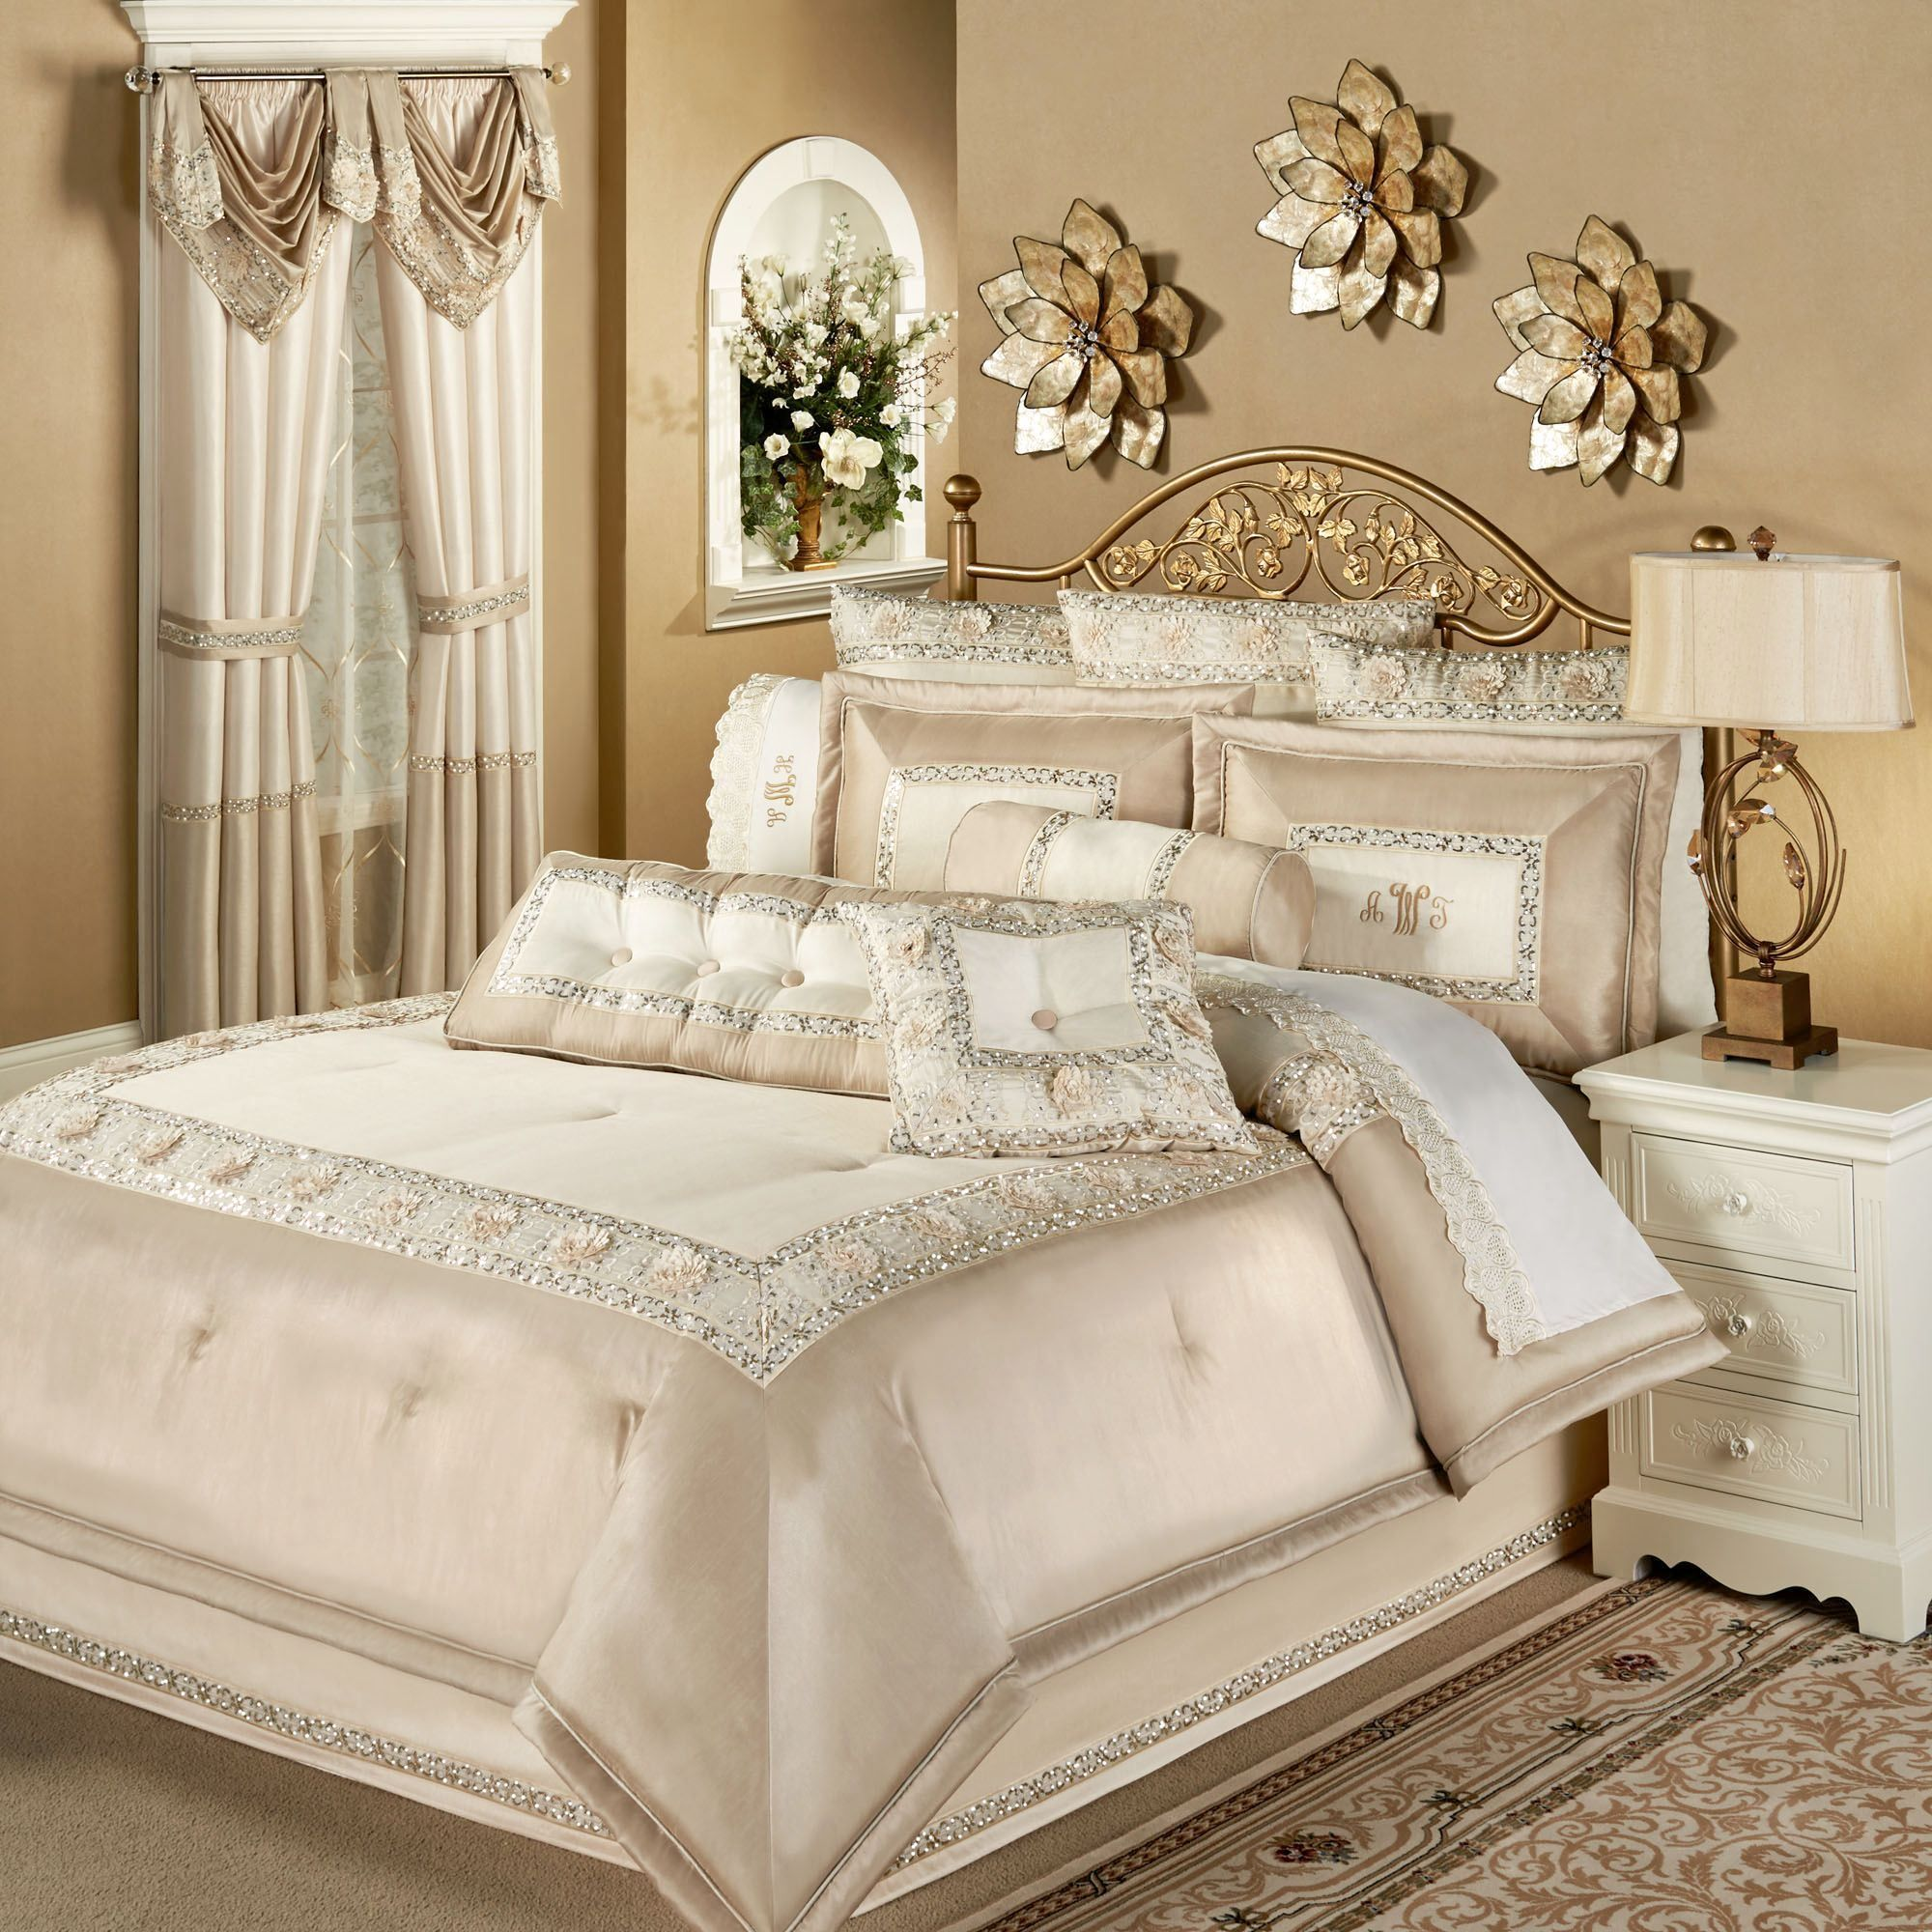 sweetgalas frame cover king bedspread set all baby size sets images crib ikea collection white cream impressive duvet bedding bed ideas hotel formidable karan donna queen